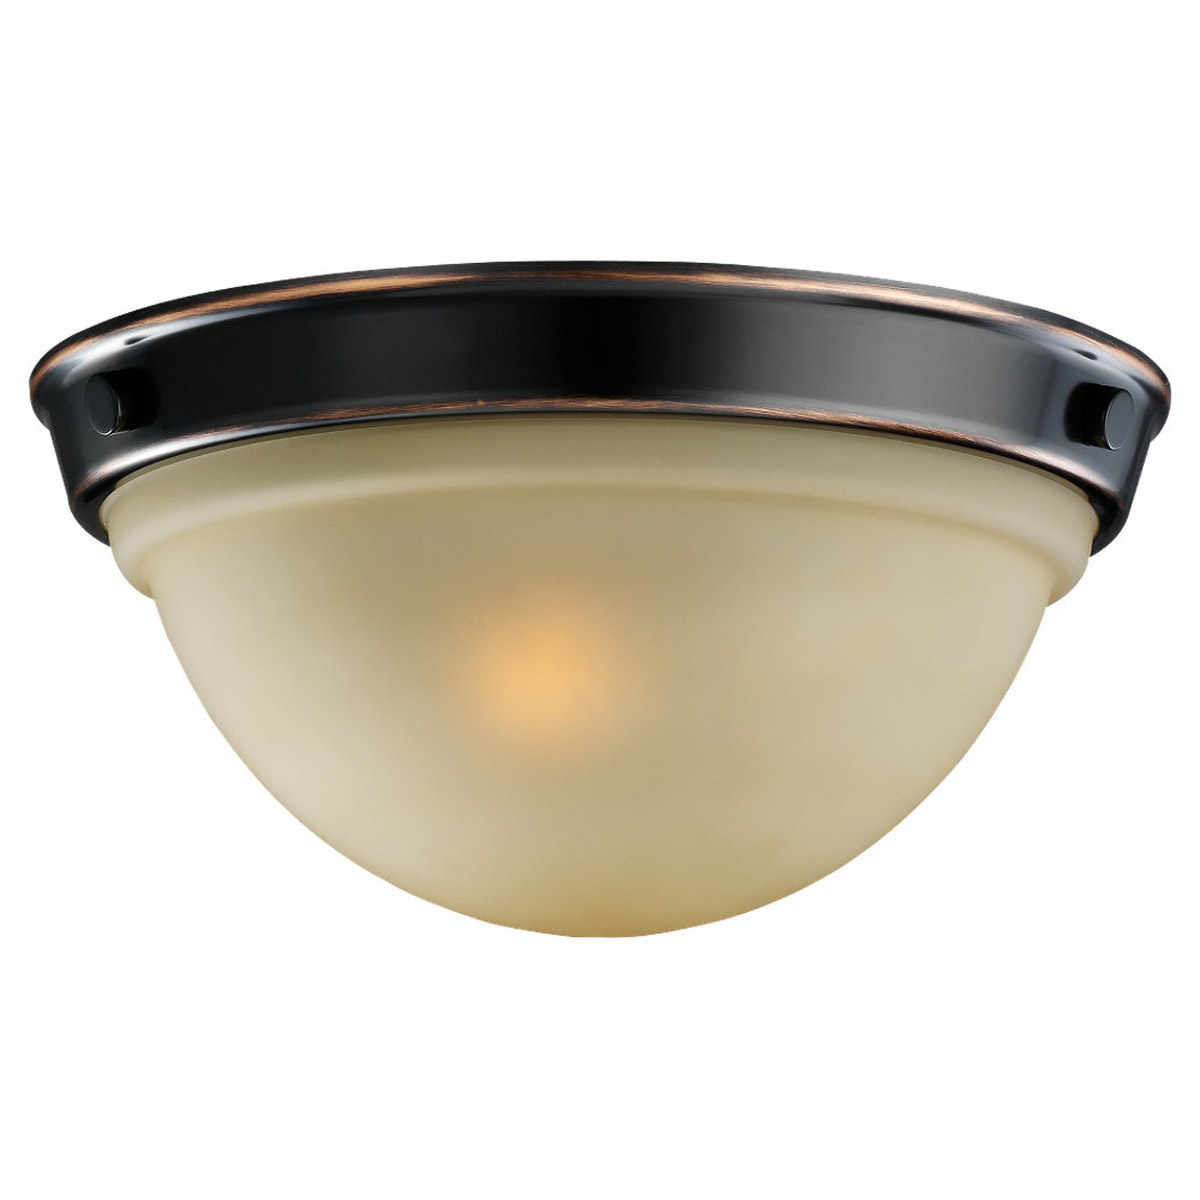 Sea Gull Lighting Sydney 2 Light Flush Mount in Vintage Brown 75745-862